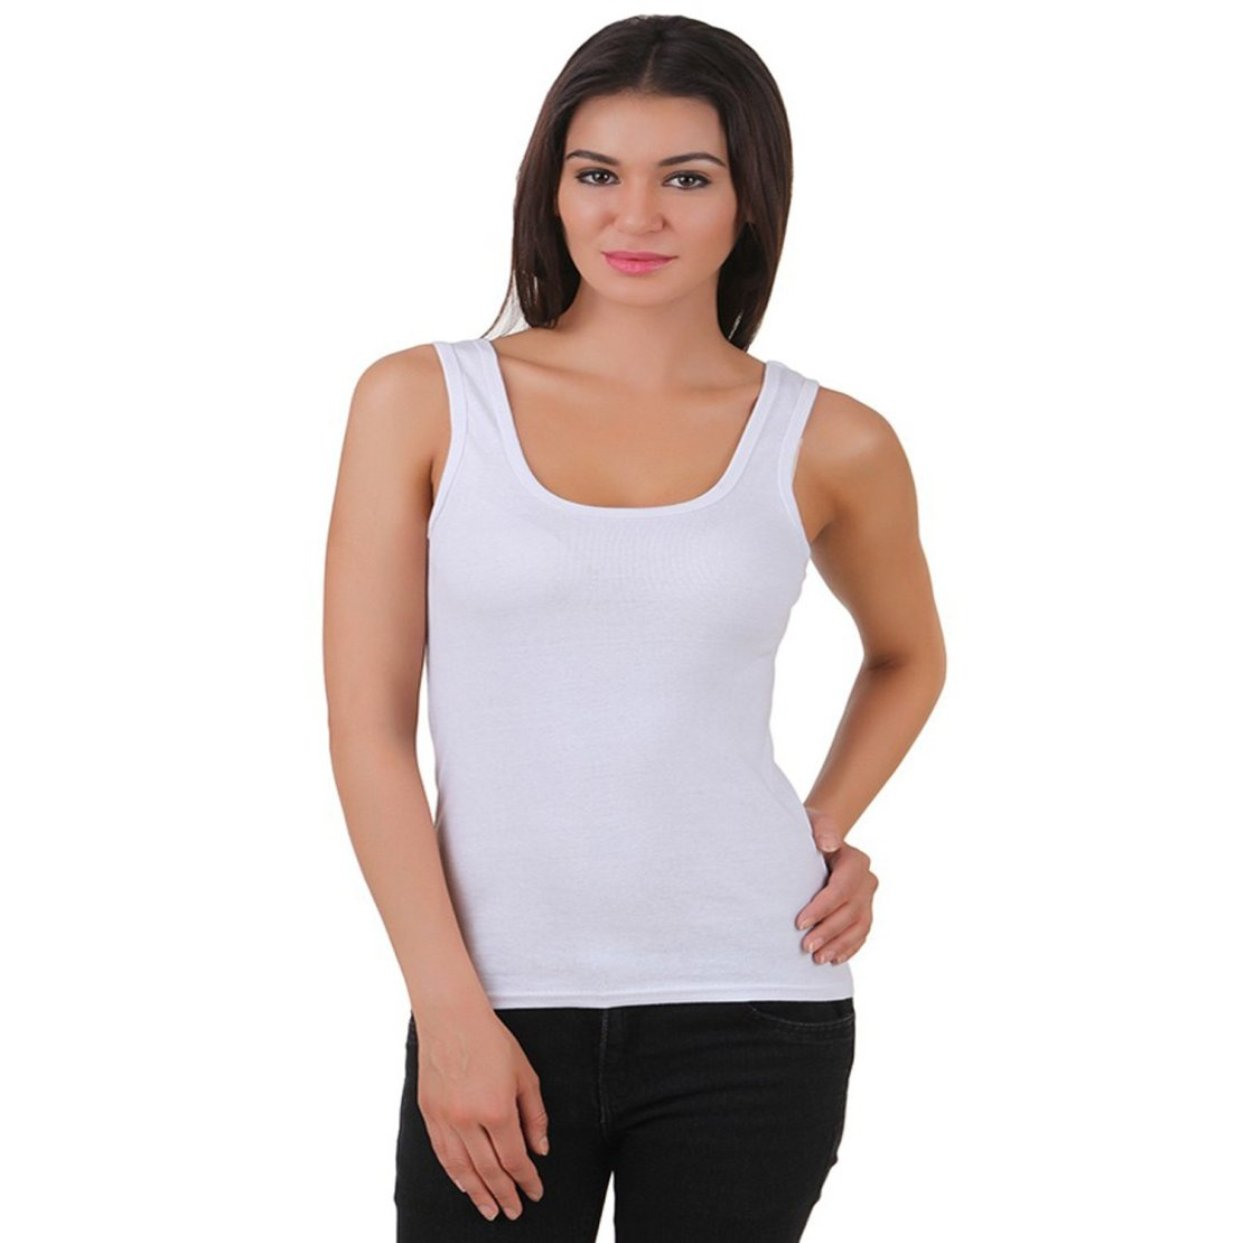 I Shop Casual Sleeveless Solid, Striped Women's White Top